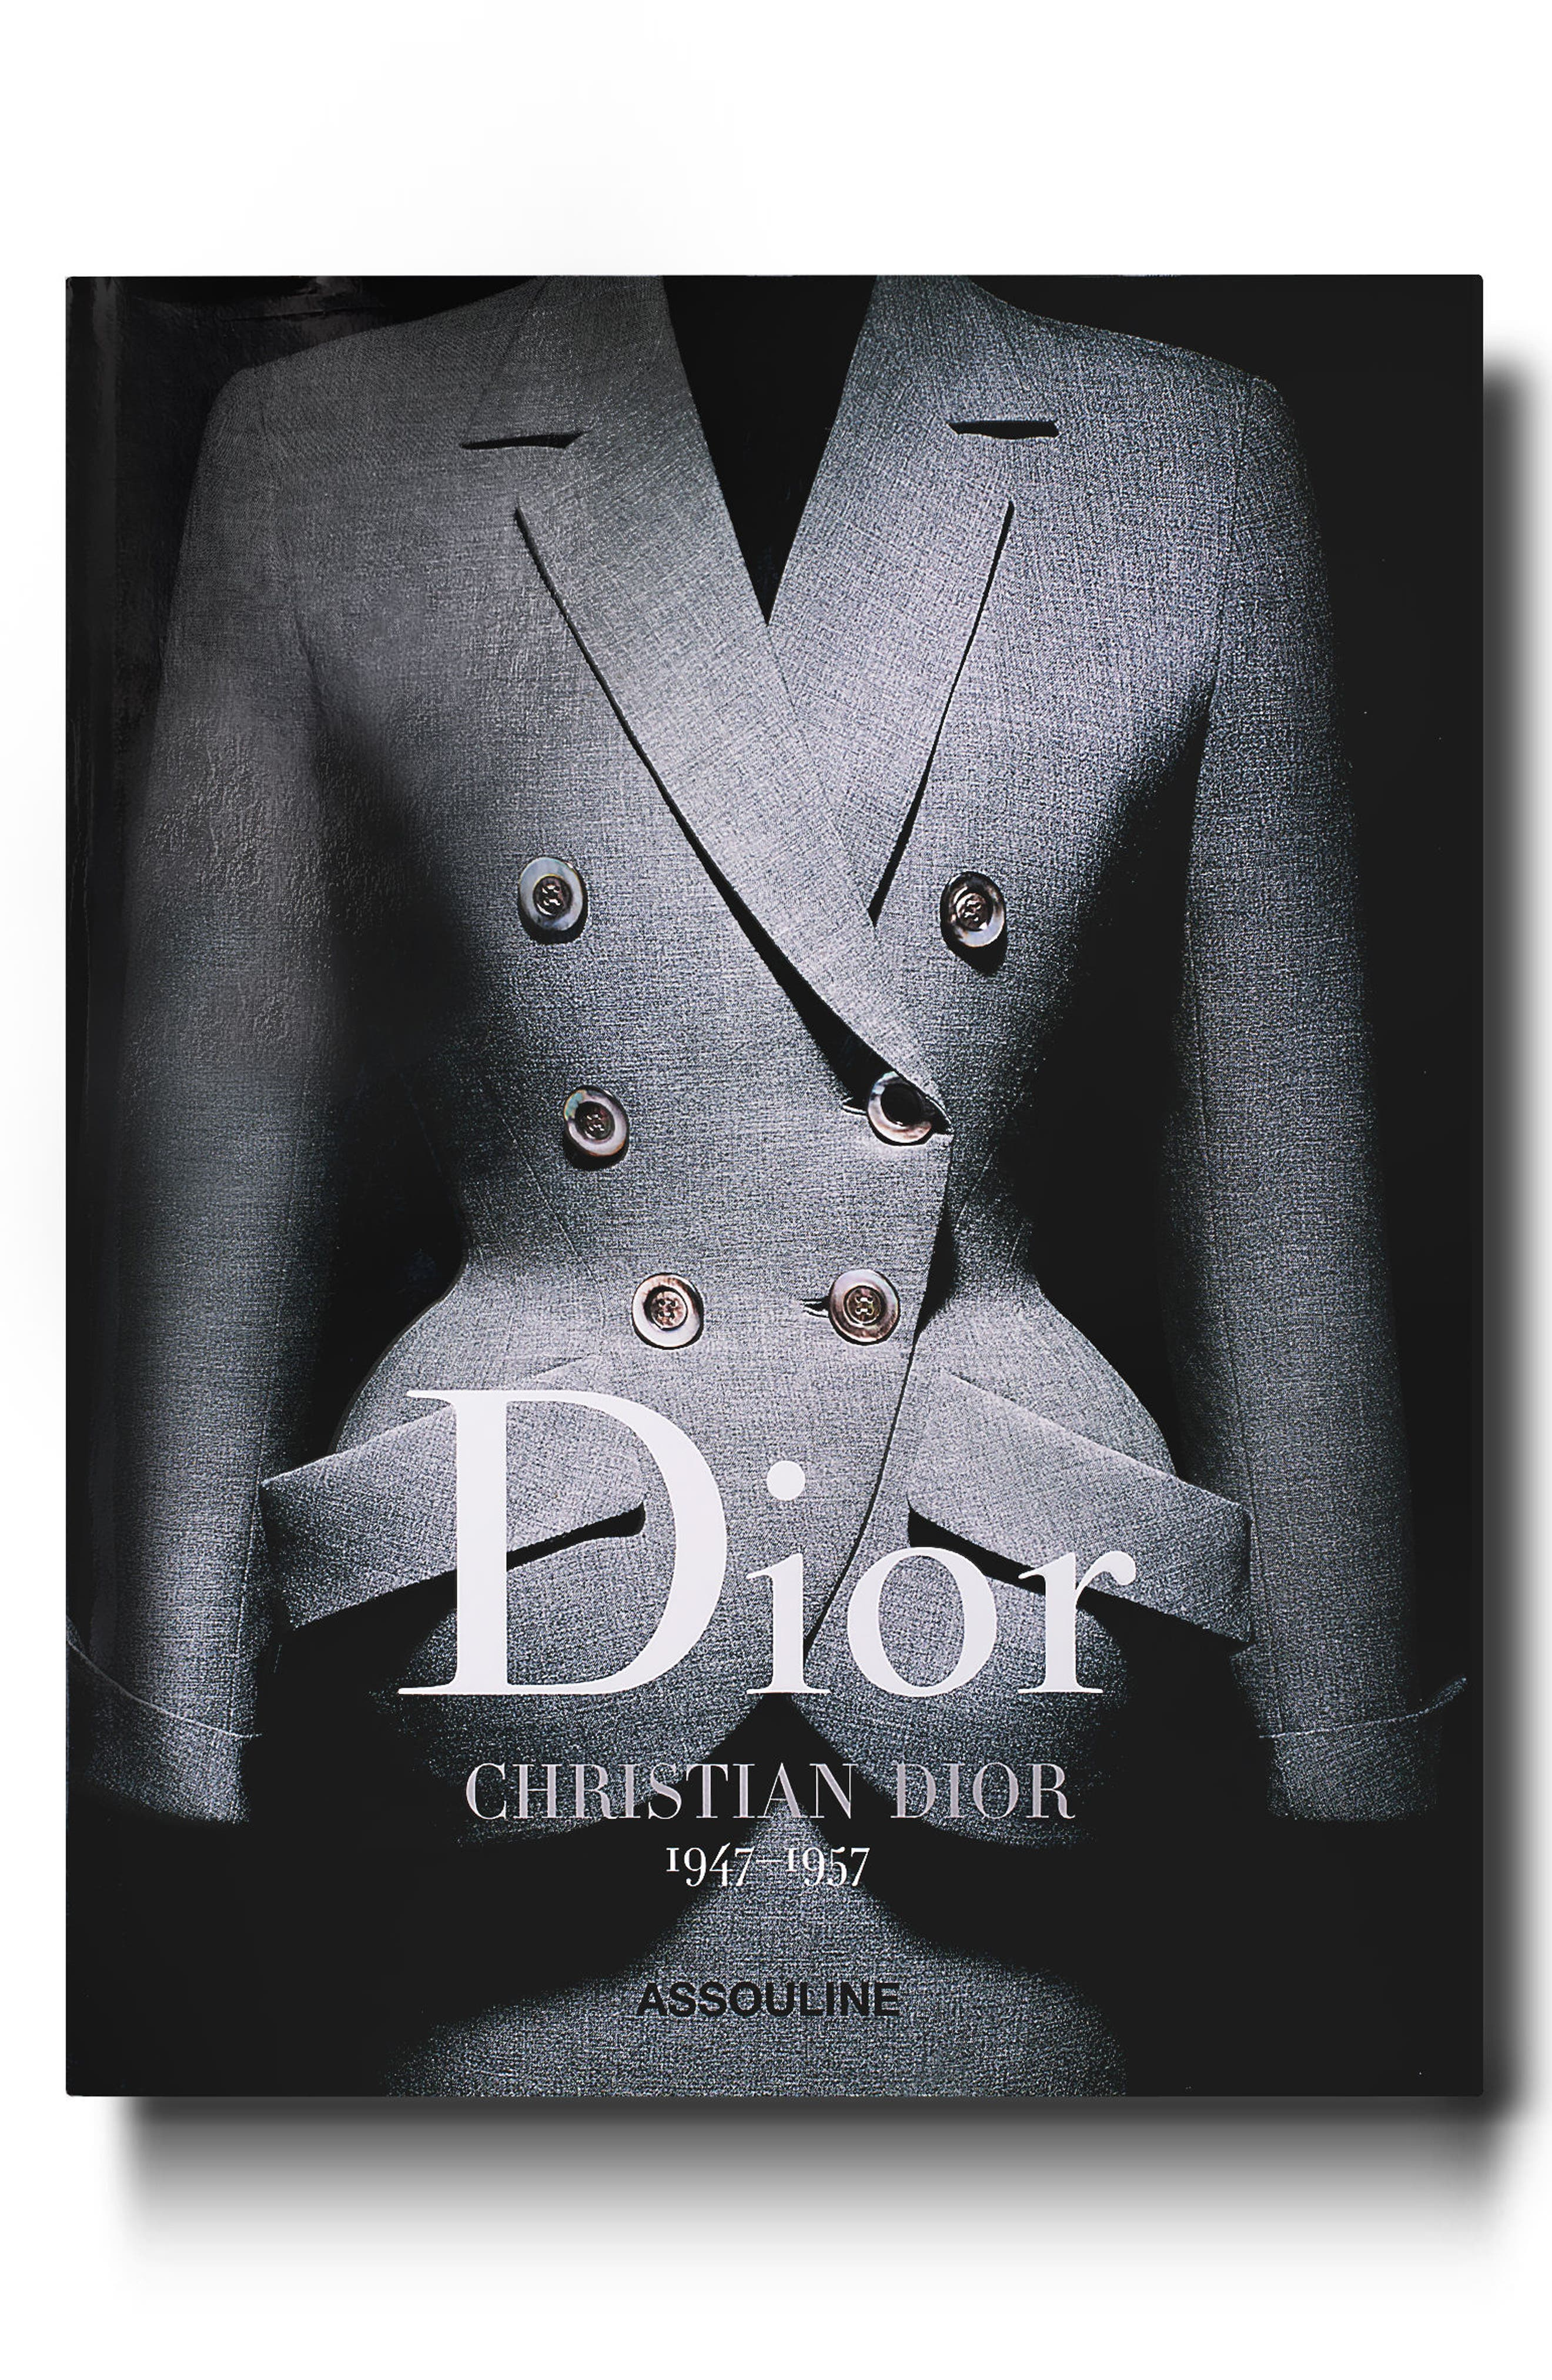 Main Image - 'Dior by Christian Dior' Book